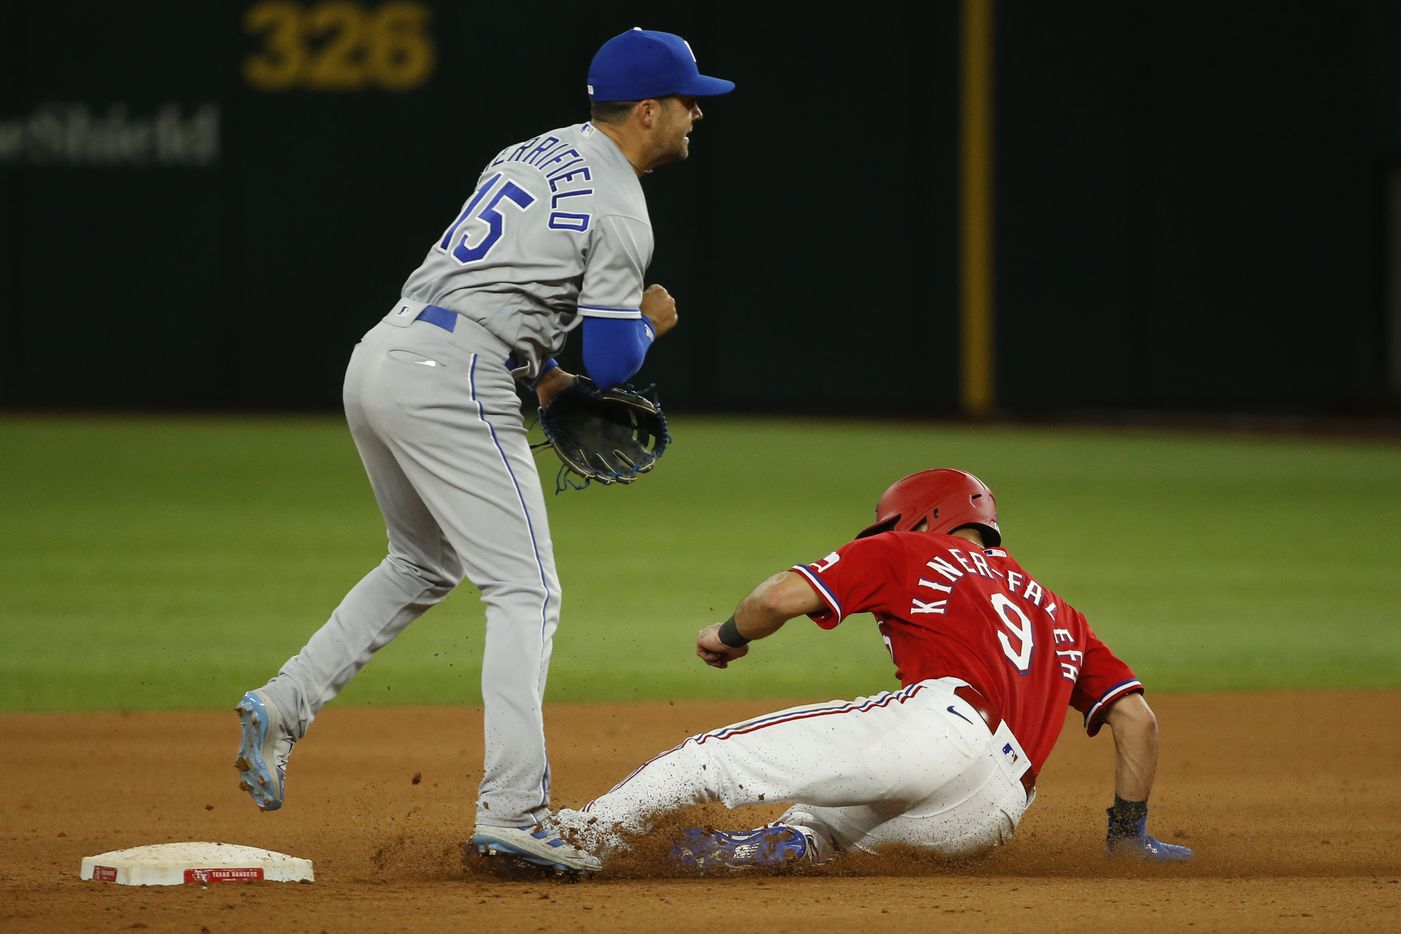 Kansas City Royals second baseman Whit Merrifield (15) starts a double play ahead of a sliding Texas Rangers shortstop Isiah Kiner-Falefa (9) during the eighth inning at Globe Life Field on Friday, June 25, 2021, in Arlington. (Elias Valverde II/The Dallas Morning News)